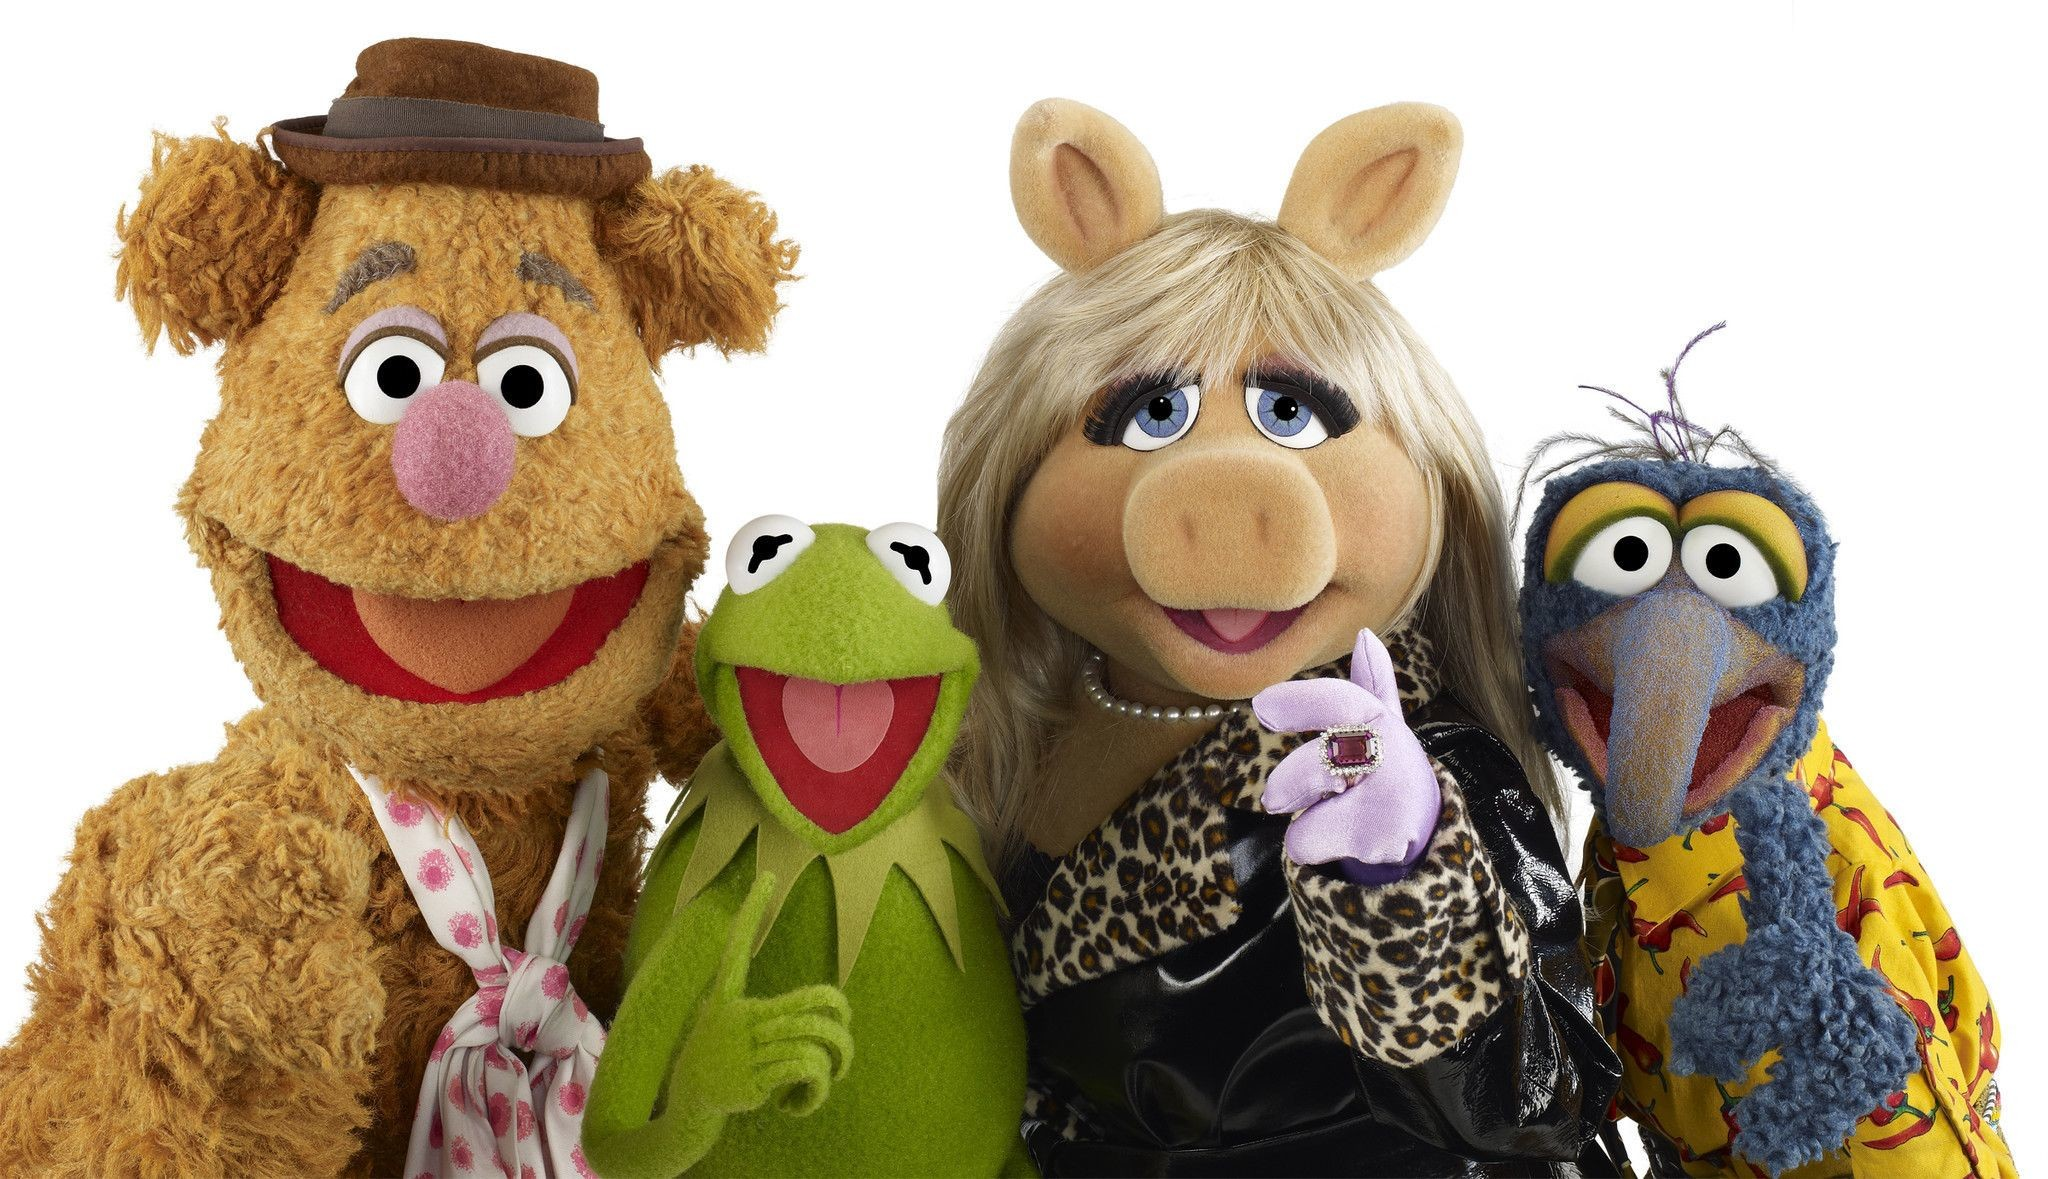 Res: 2048x1179, A new Kermit goes Hollywood as 'The Muppets Take the Bowl' - LA Times